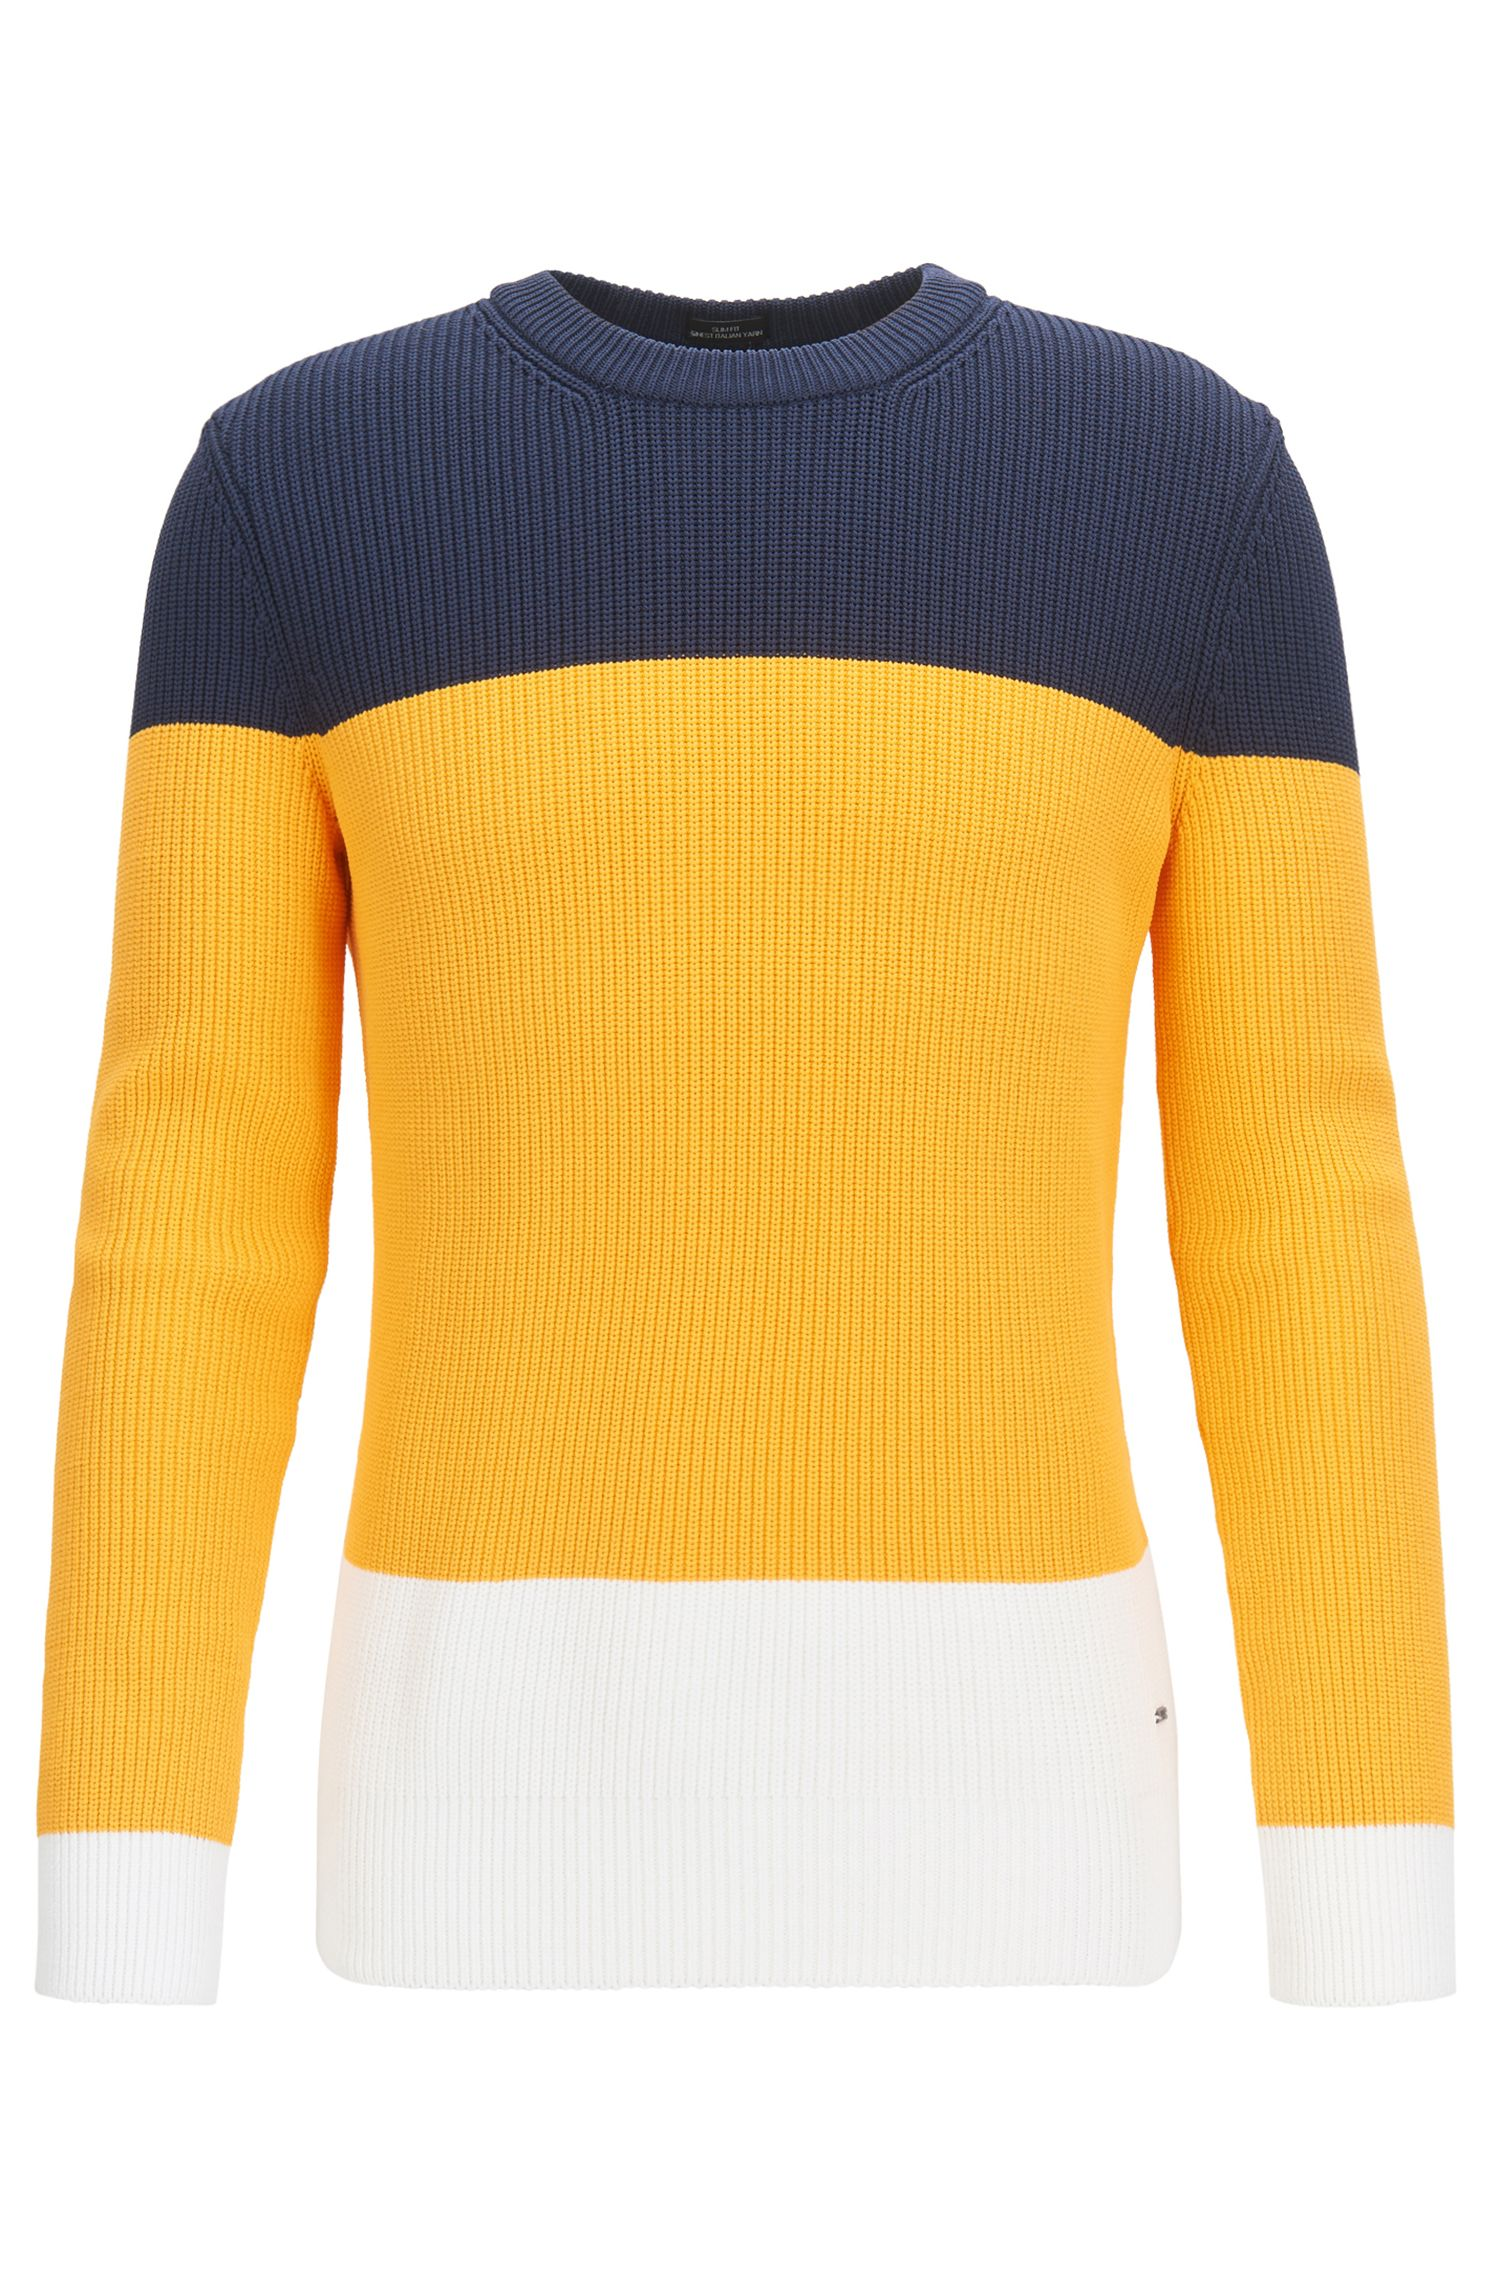 Gerippter Pullover aus Material-Mix mit Colour-Block-Design